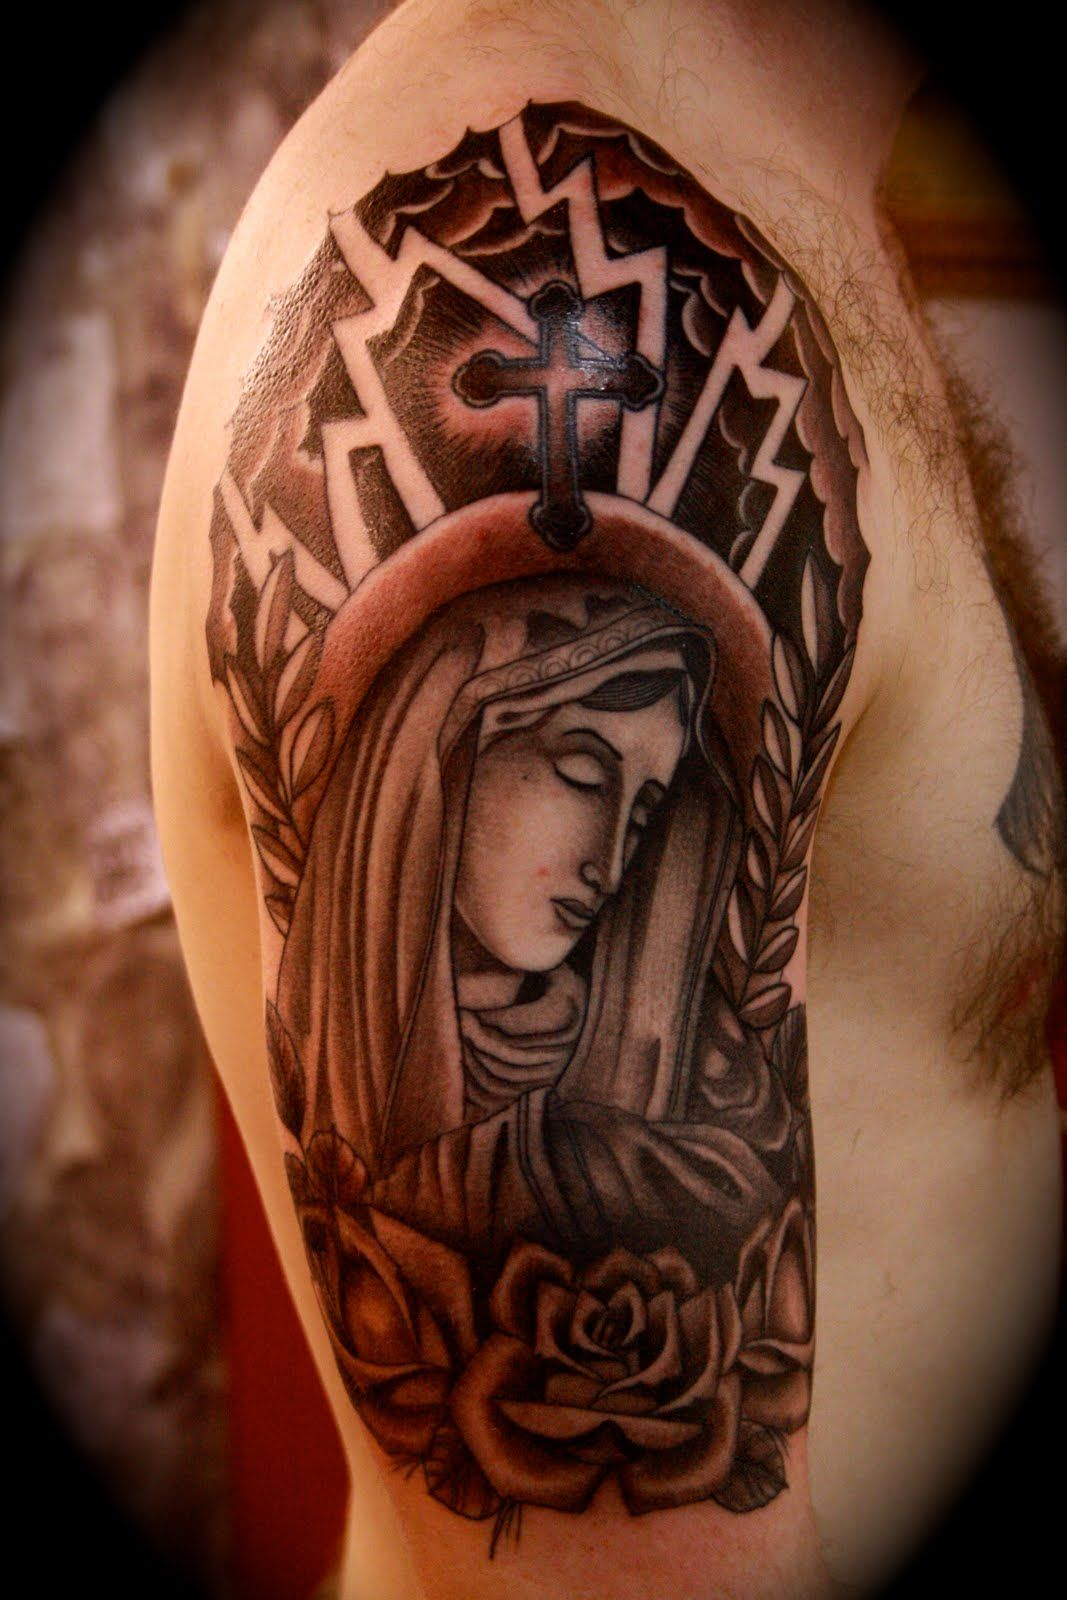 Best Christian Tattoos | Religious Tattoos Designs, Ideas ...